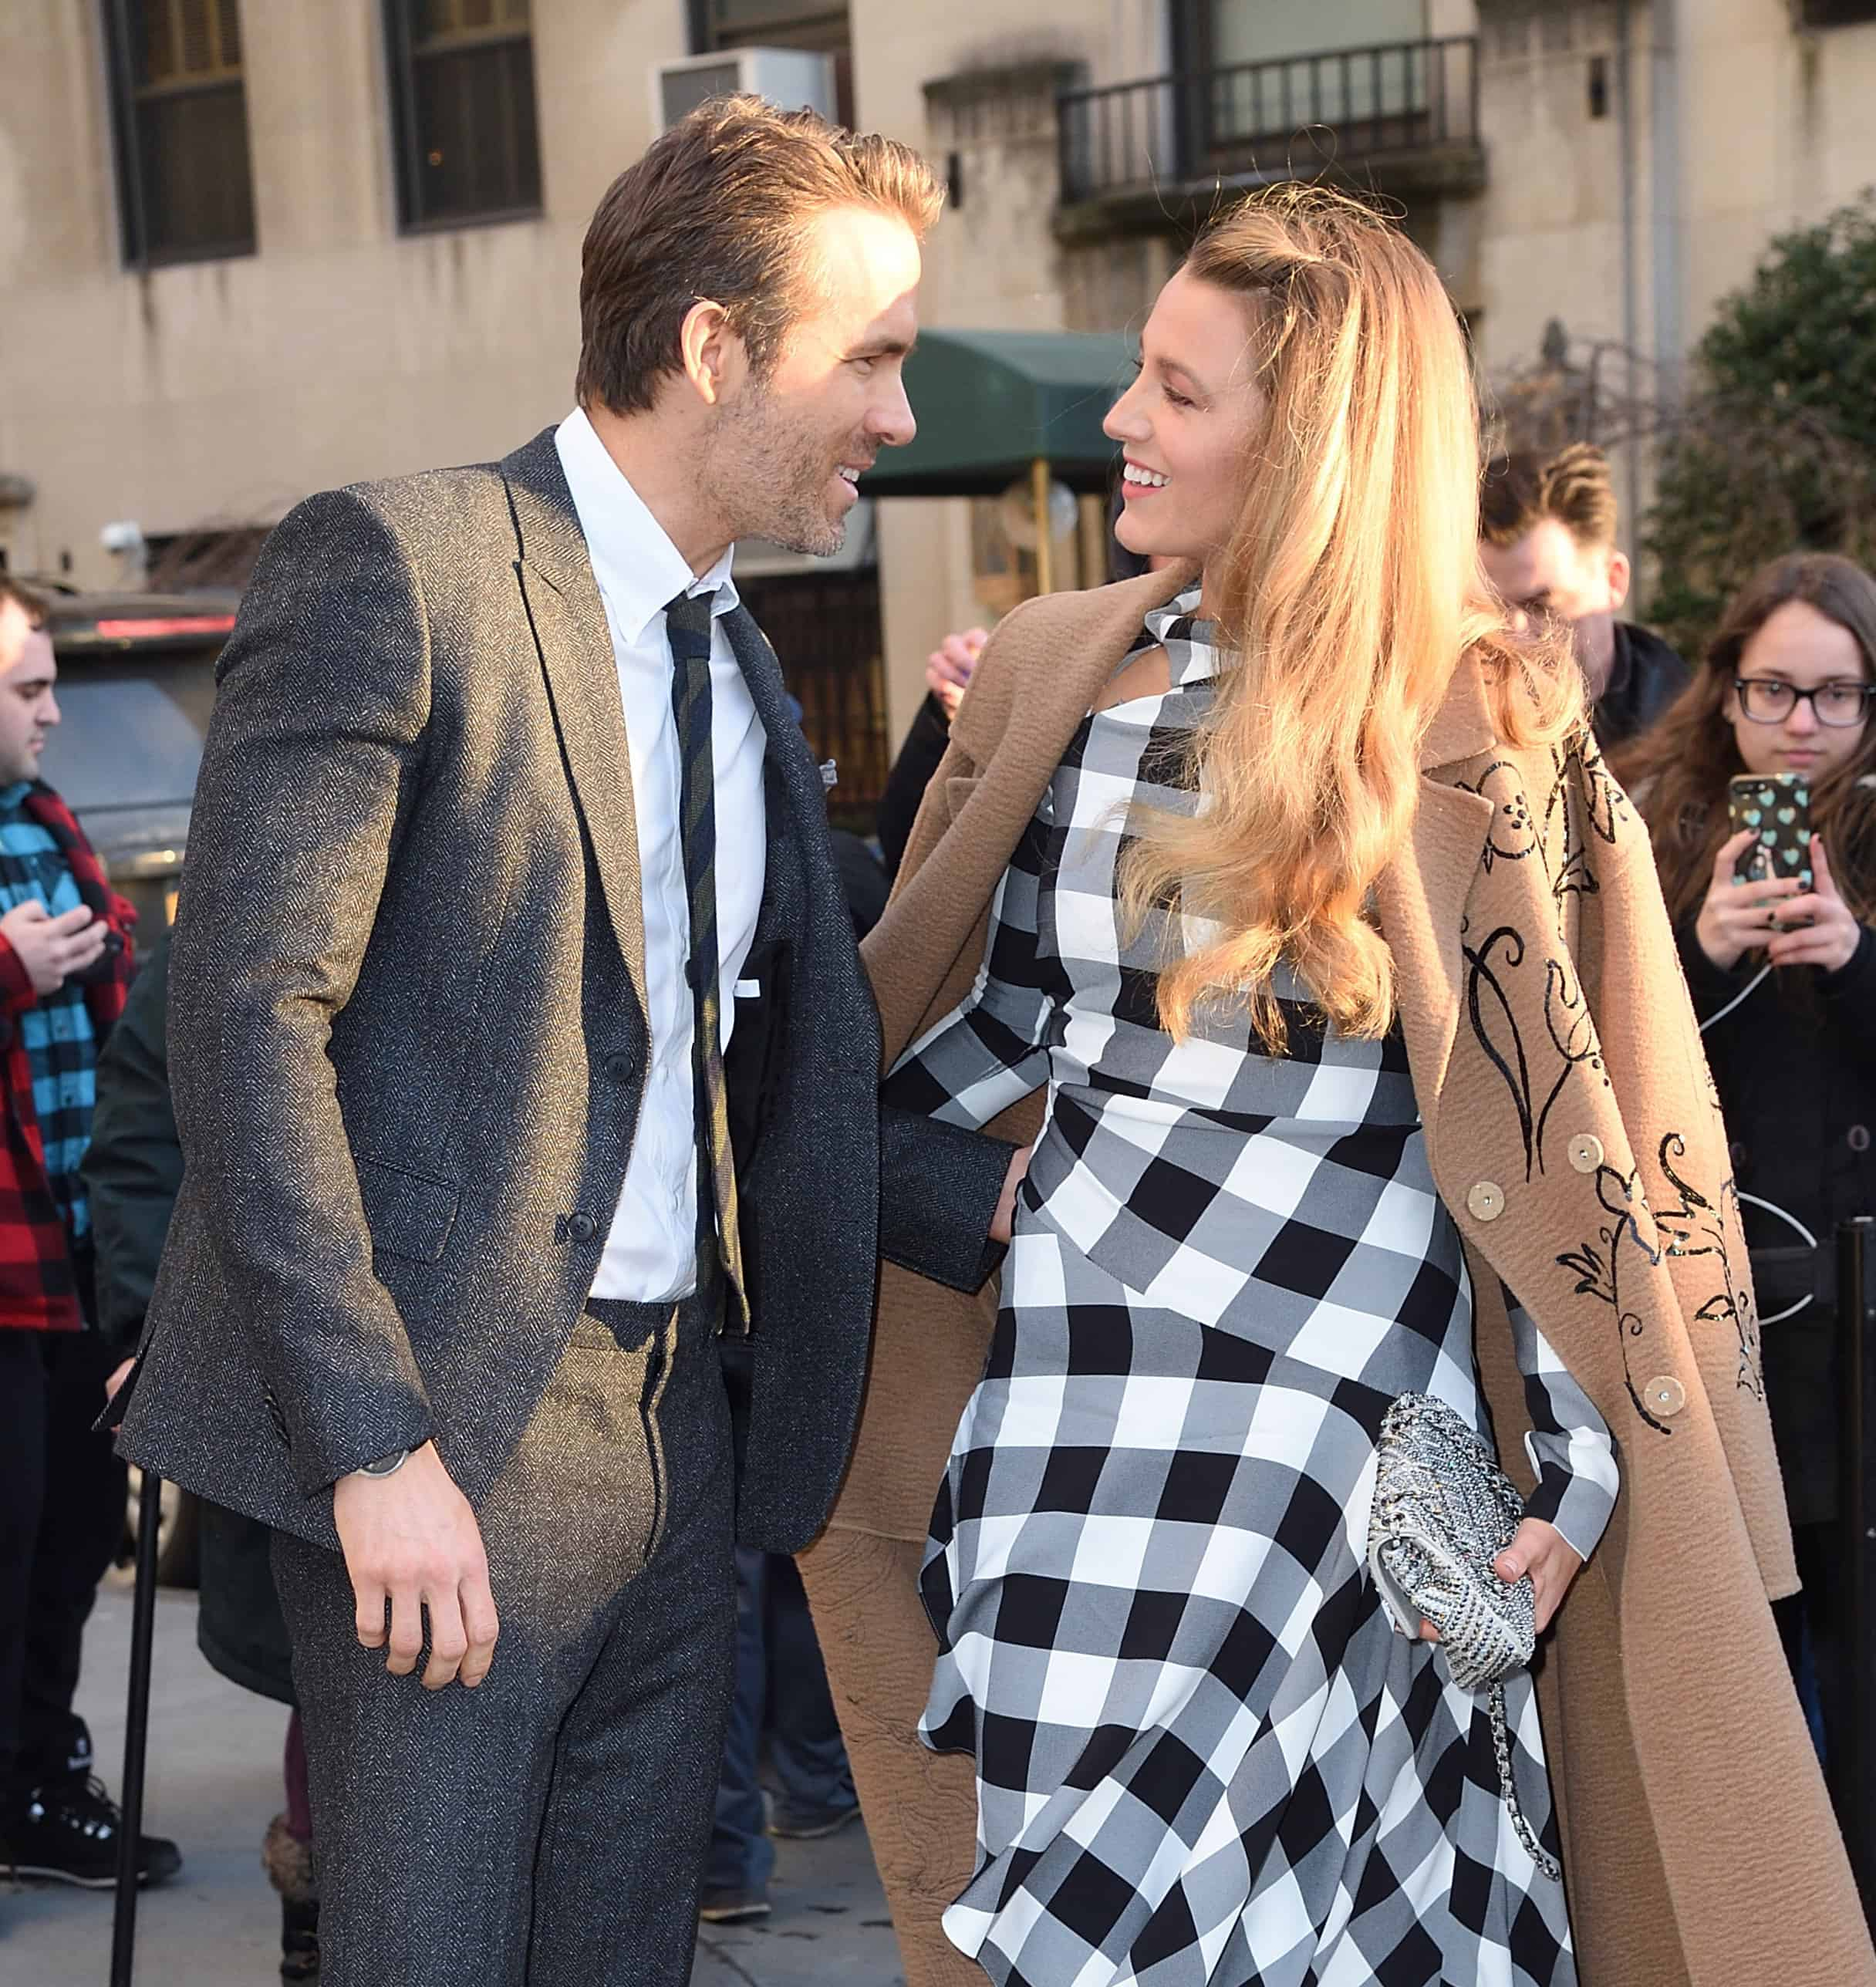 Blake Lively and Ryan Reynolds break up